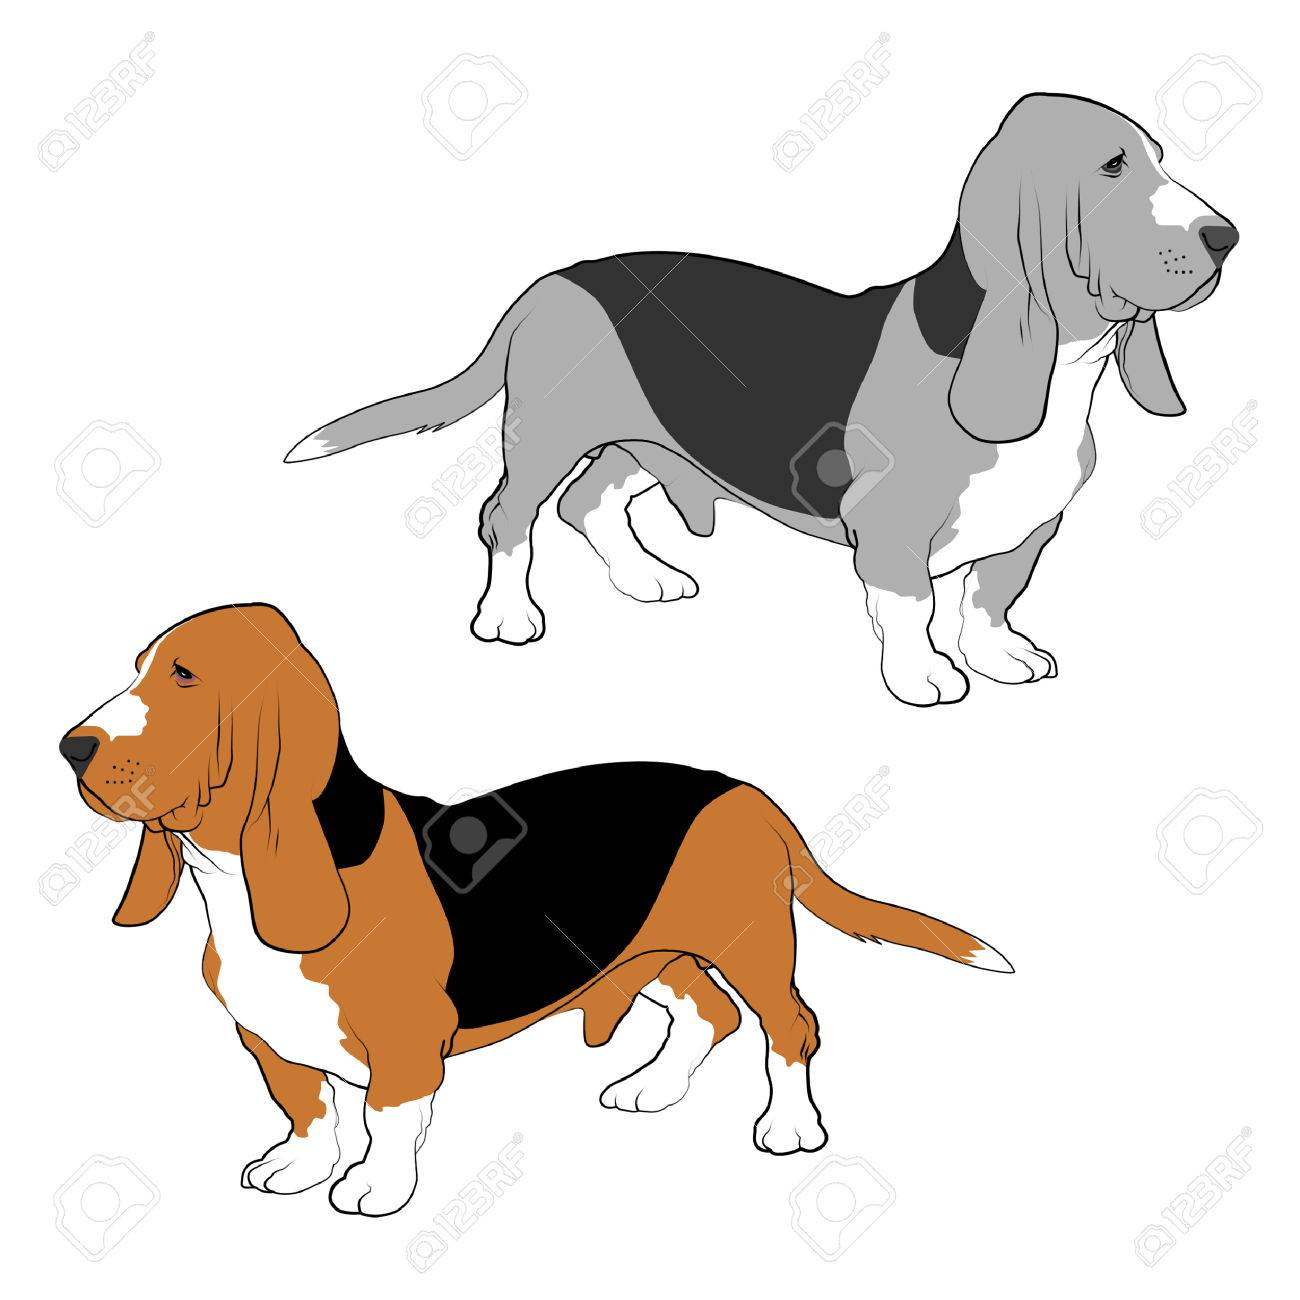 Basset Hound line drawings. - 71795003